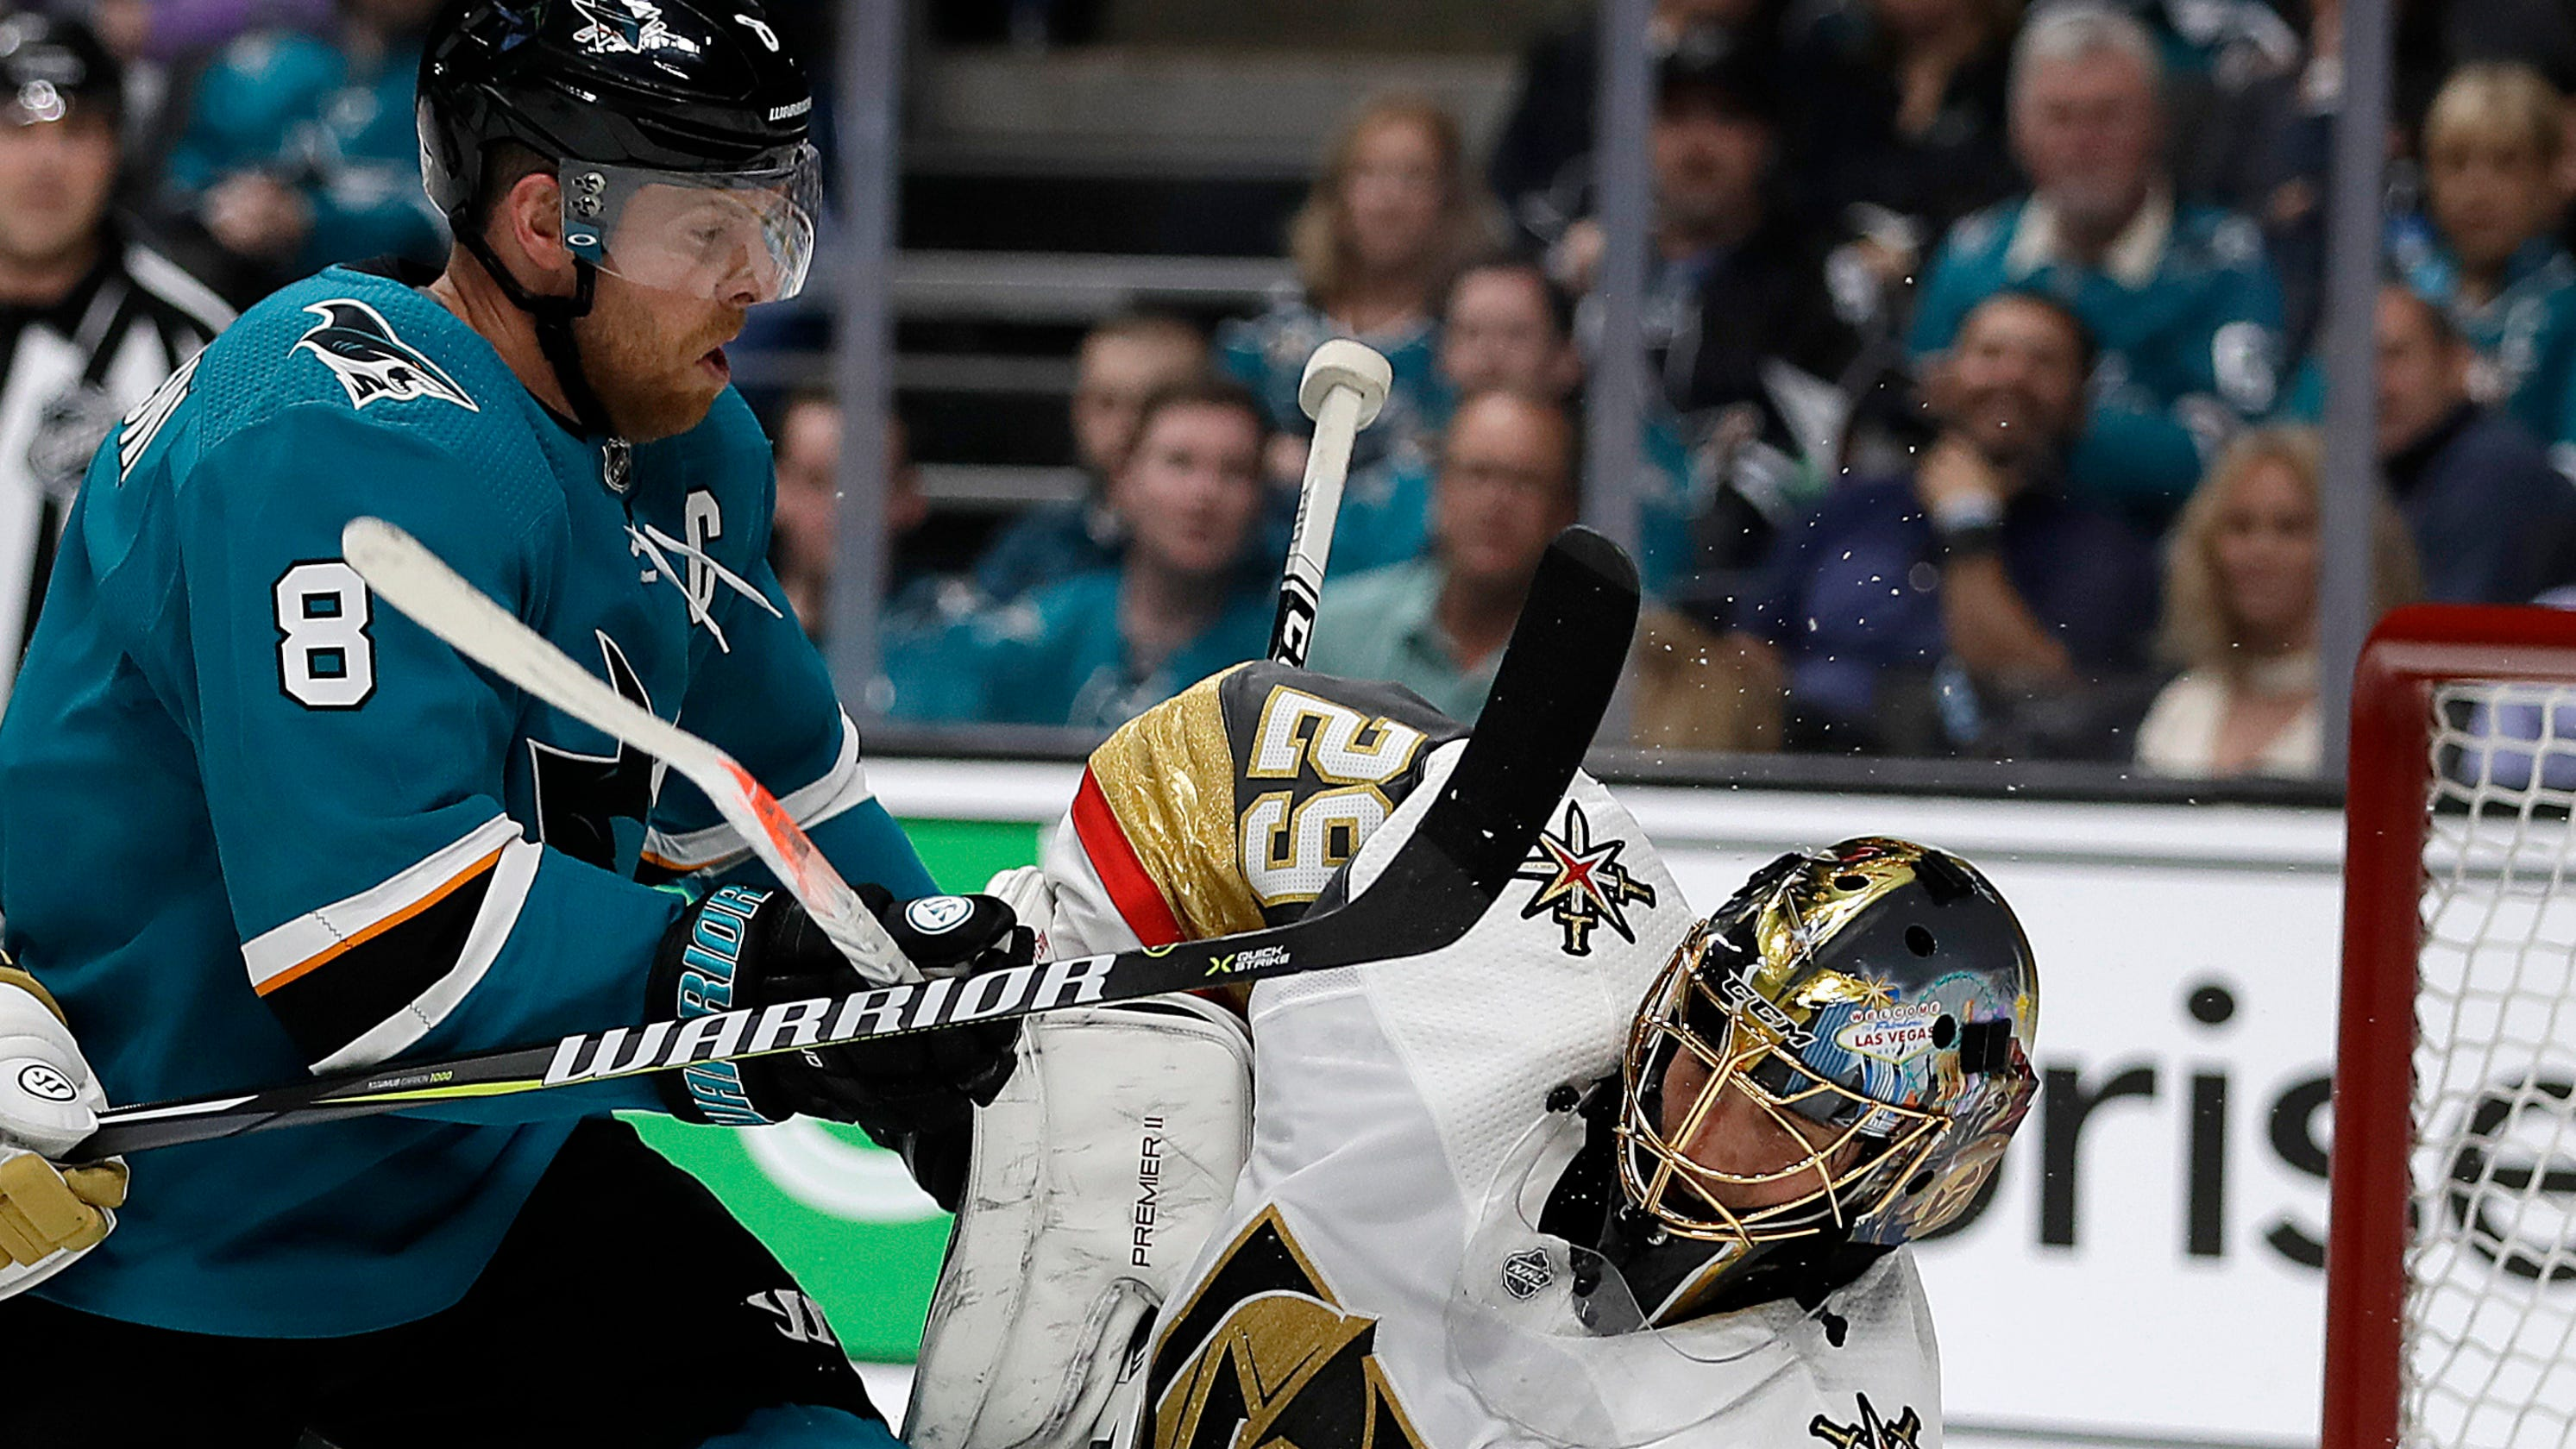 NHL playoffs: Joe Pavelski of Sharks scores goal off his face